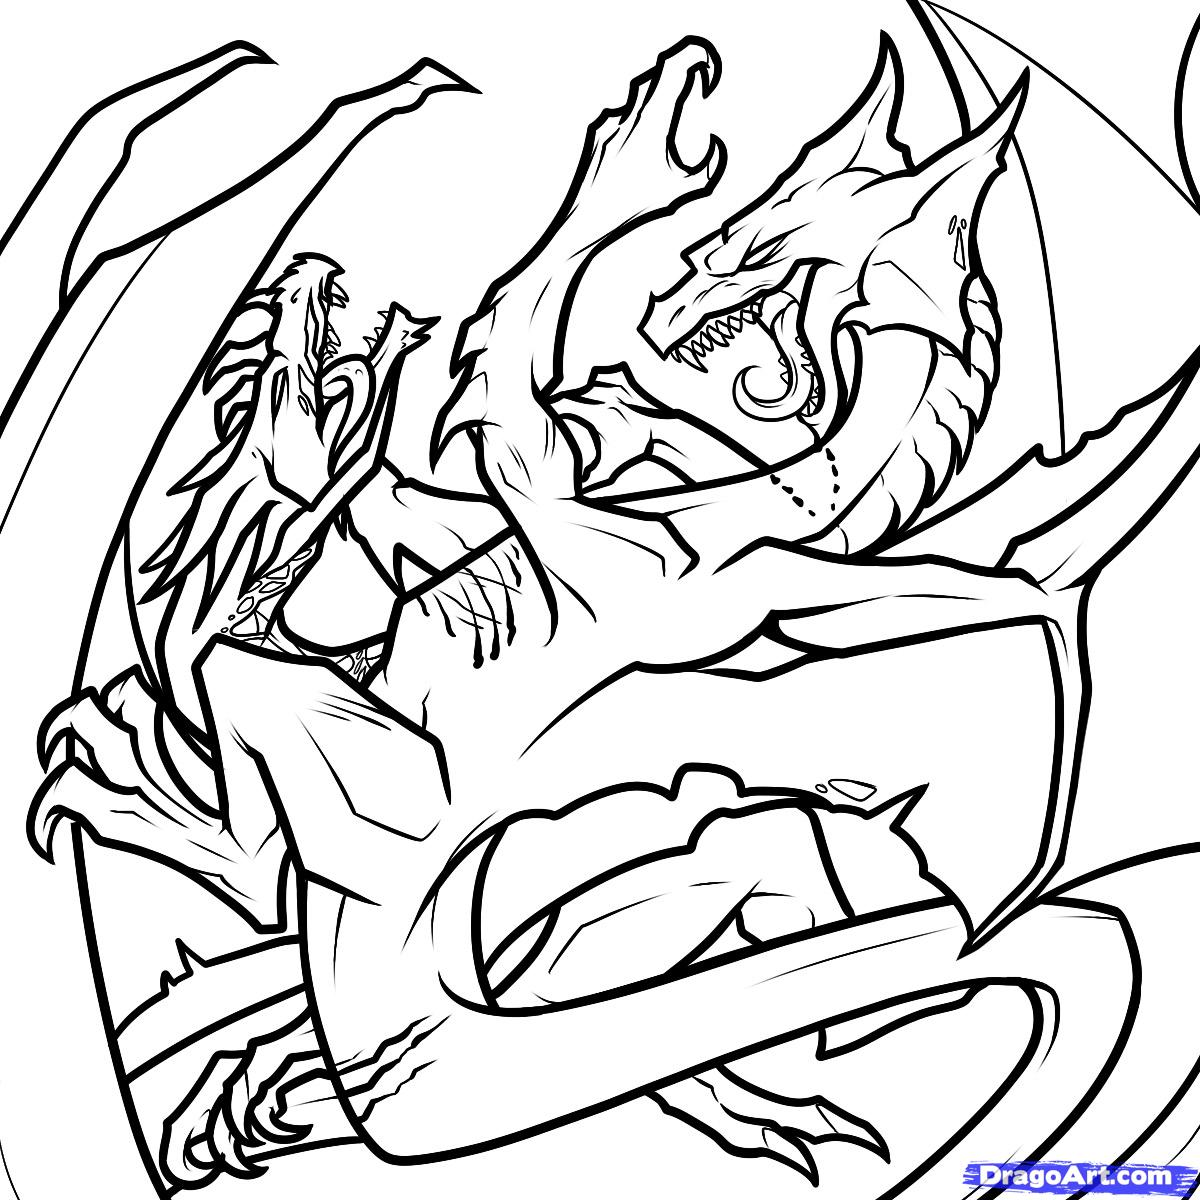 1200x1200 step how to draw dragons fighting, dragons fighting